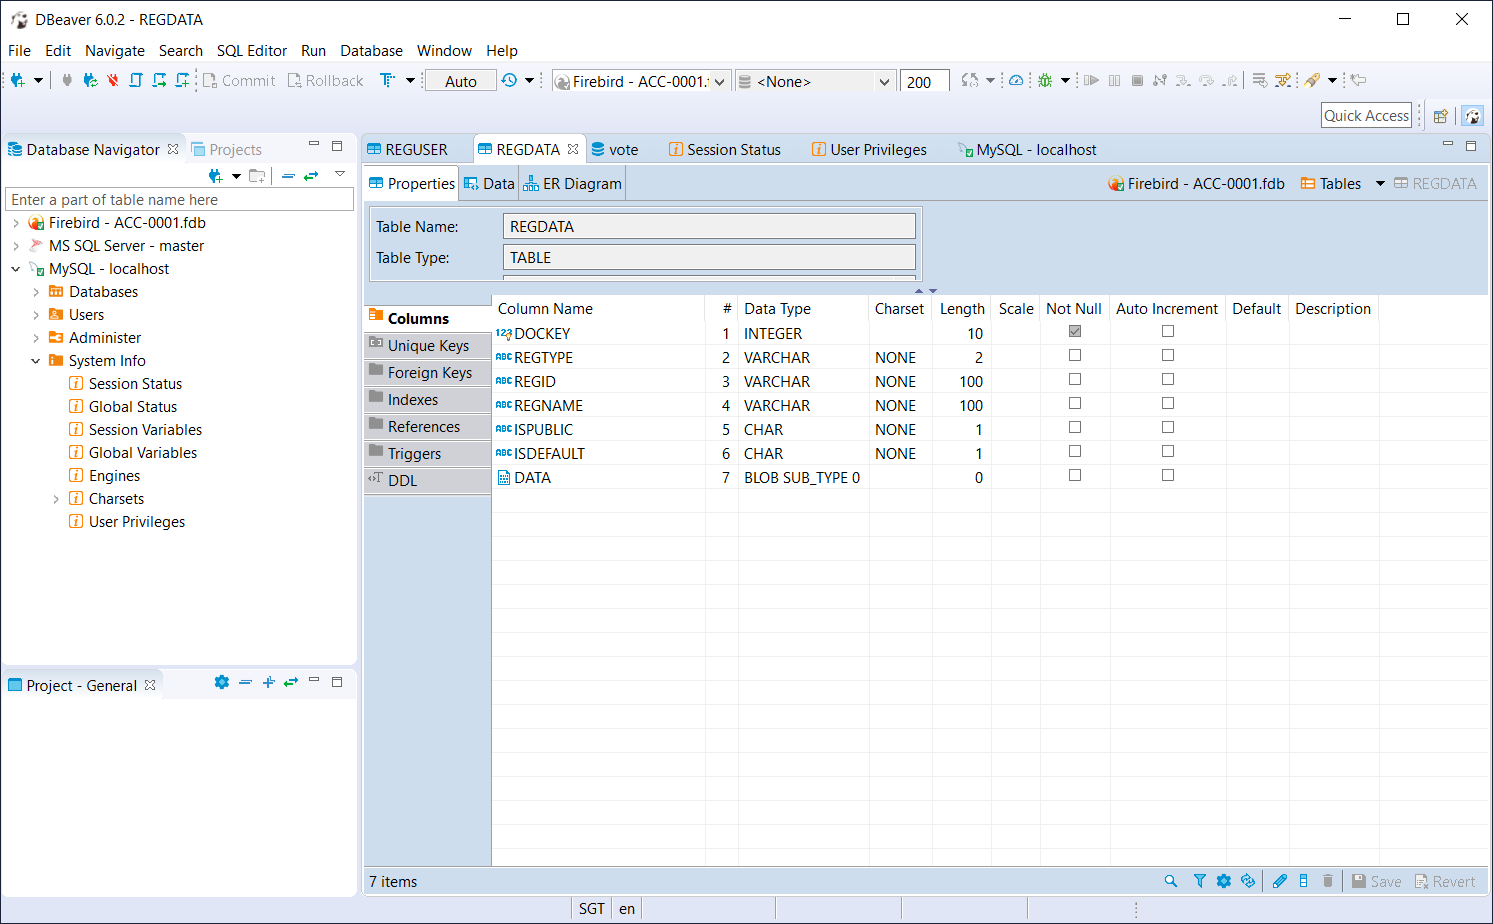 Free database clients able to access multiple DBMS - DBeaver CE